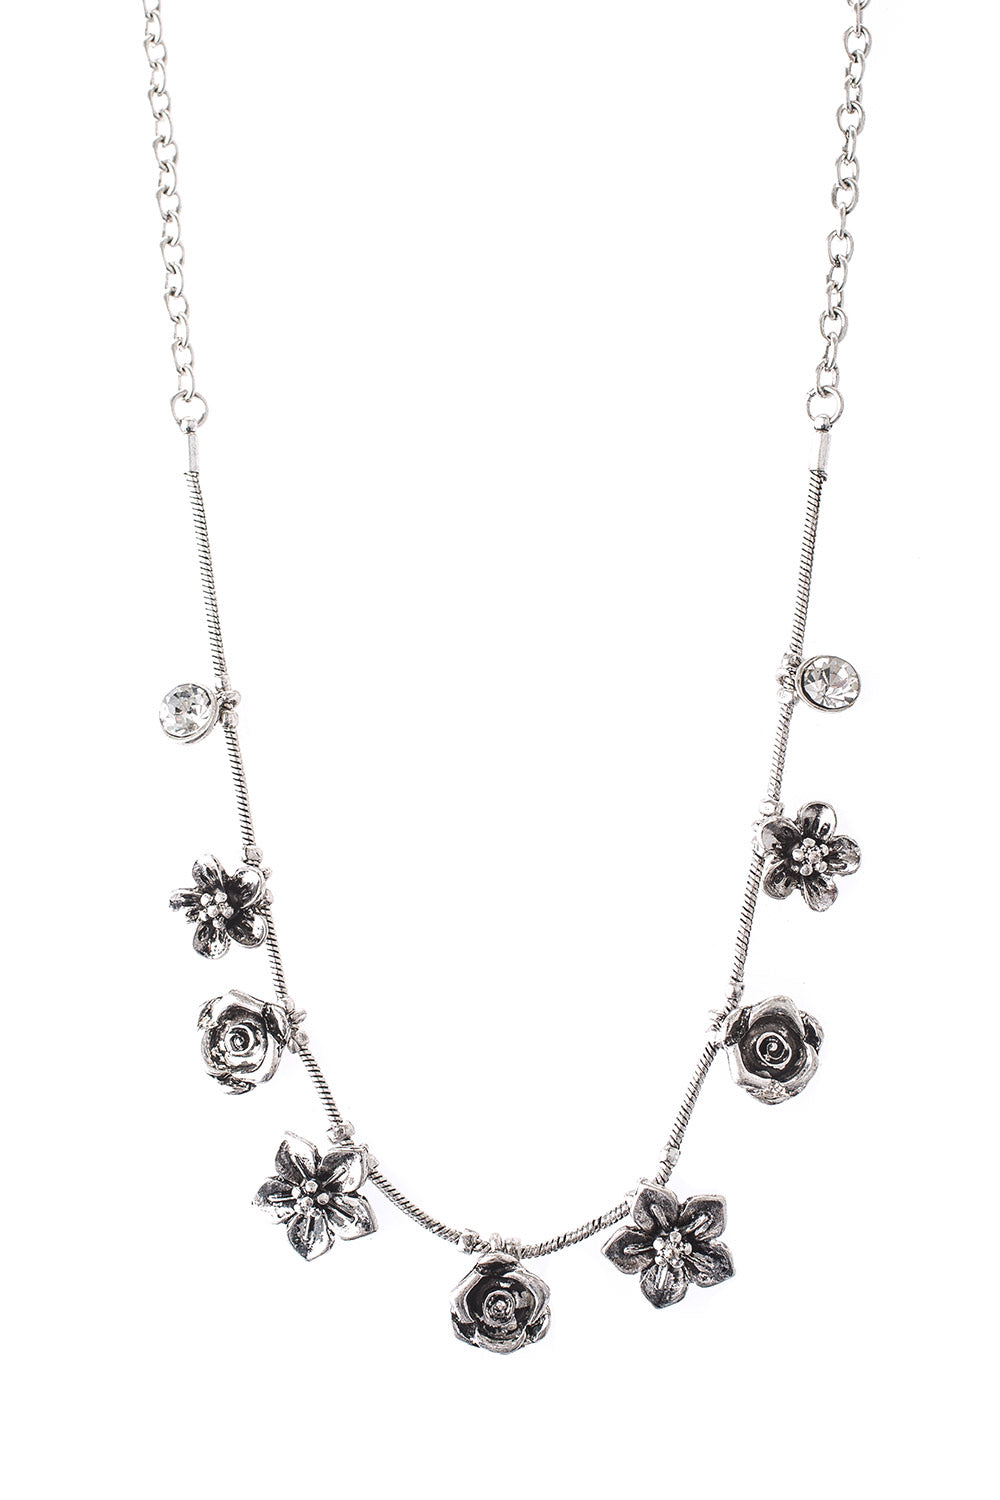 Type 2 Floral Fantasy Necklace